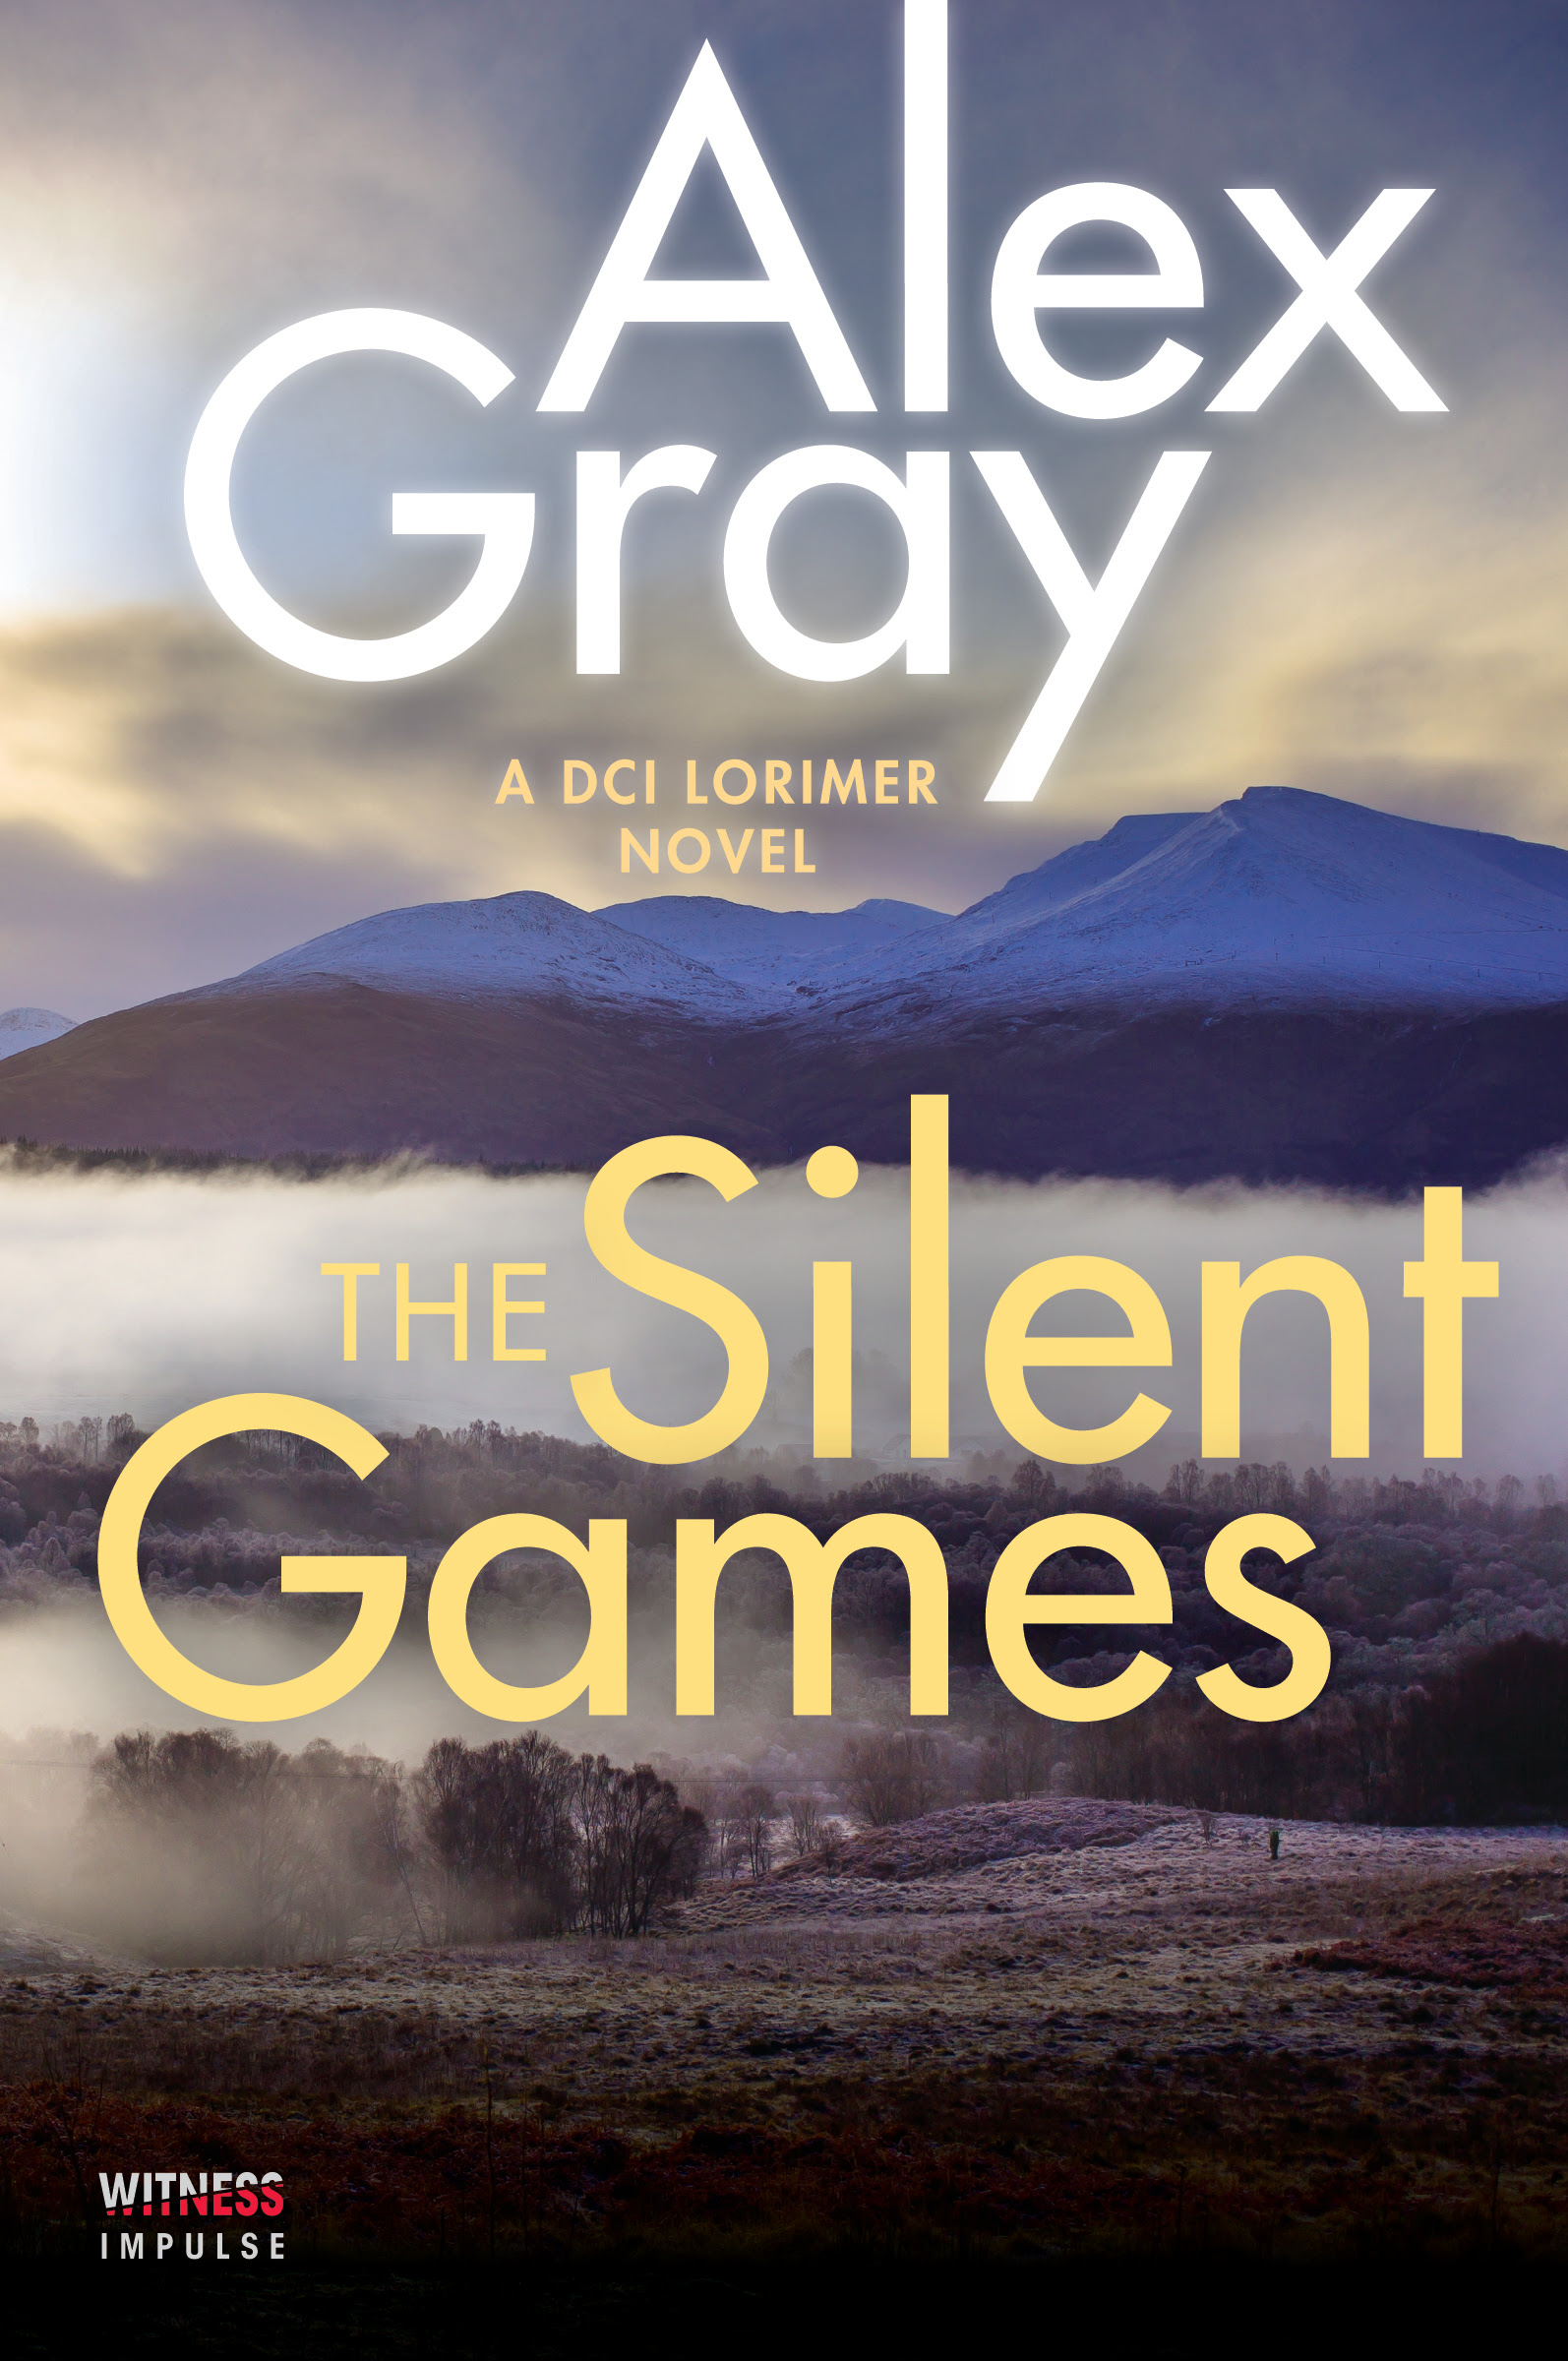 The Silent Games by Alex Gray